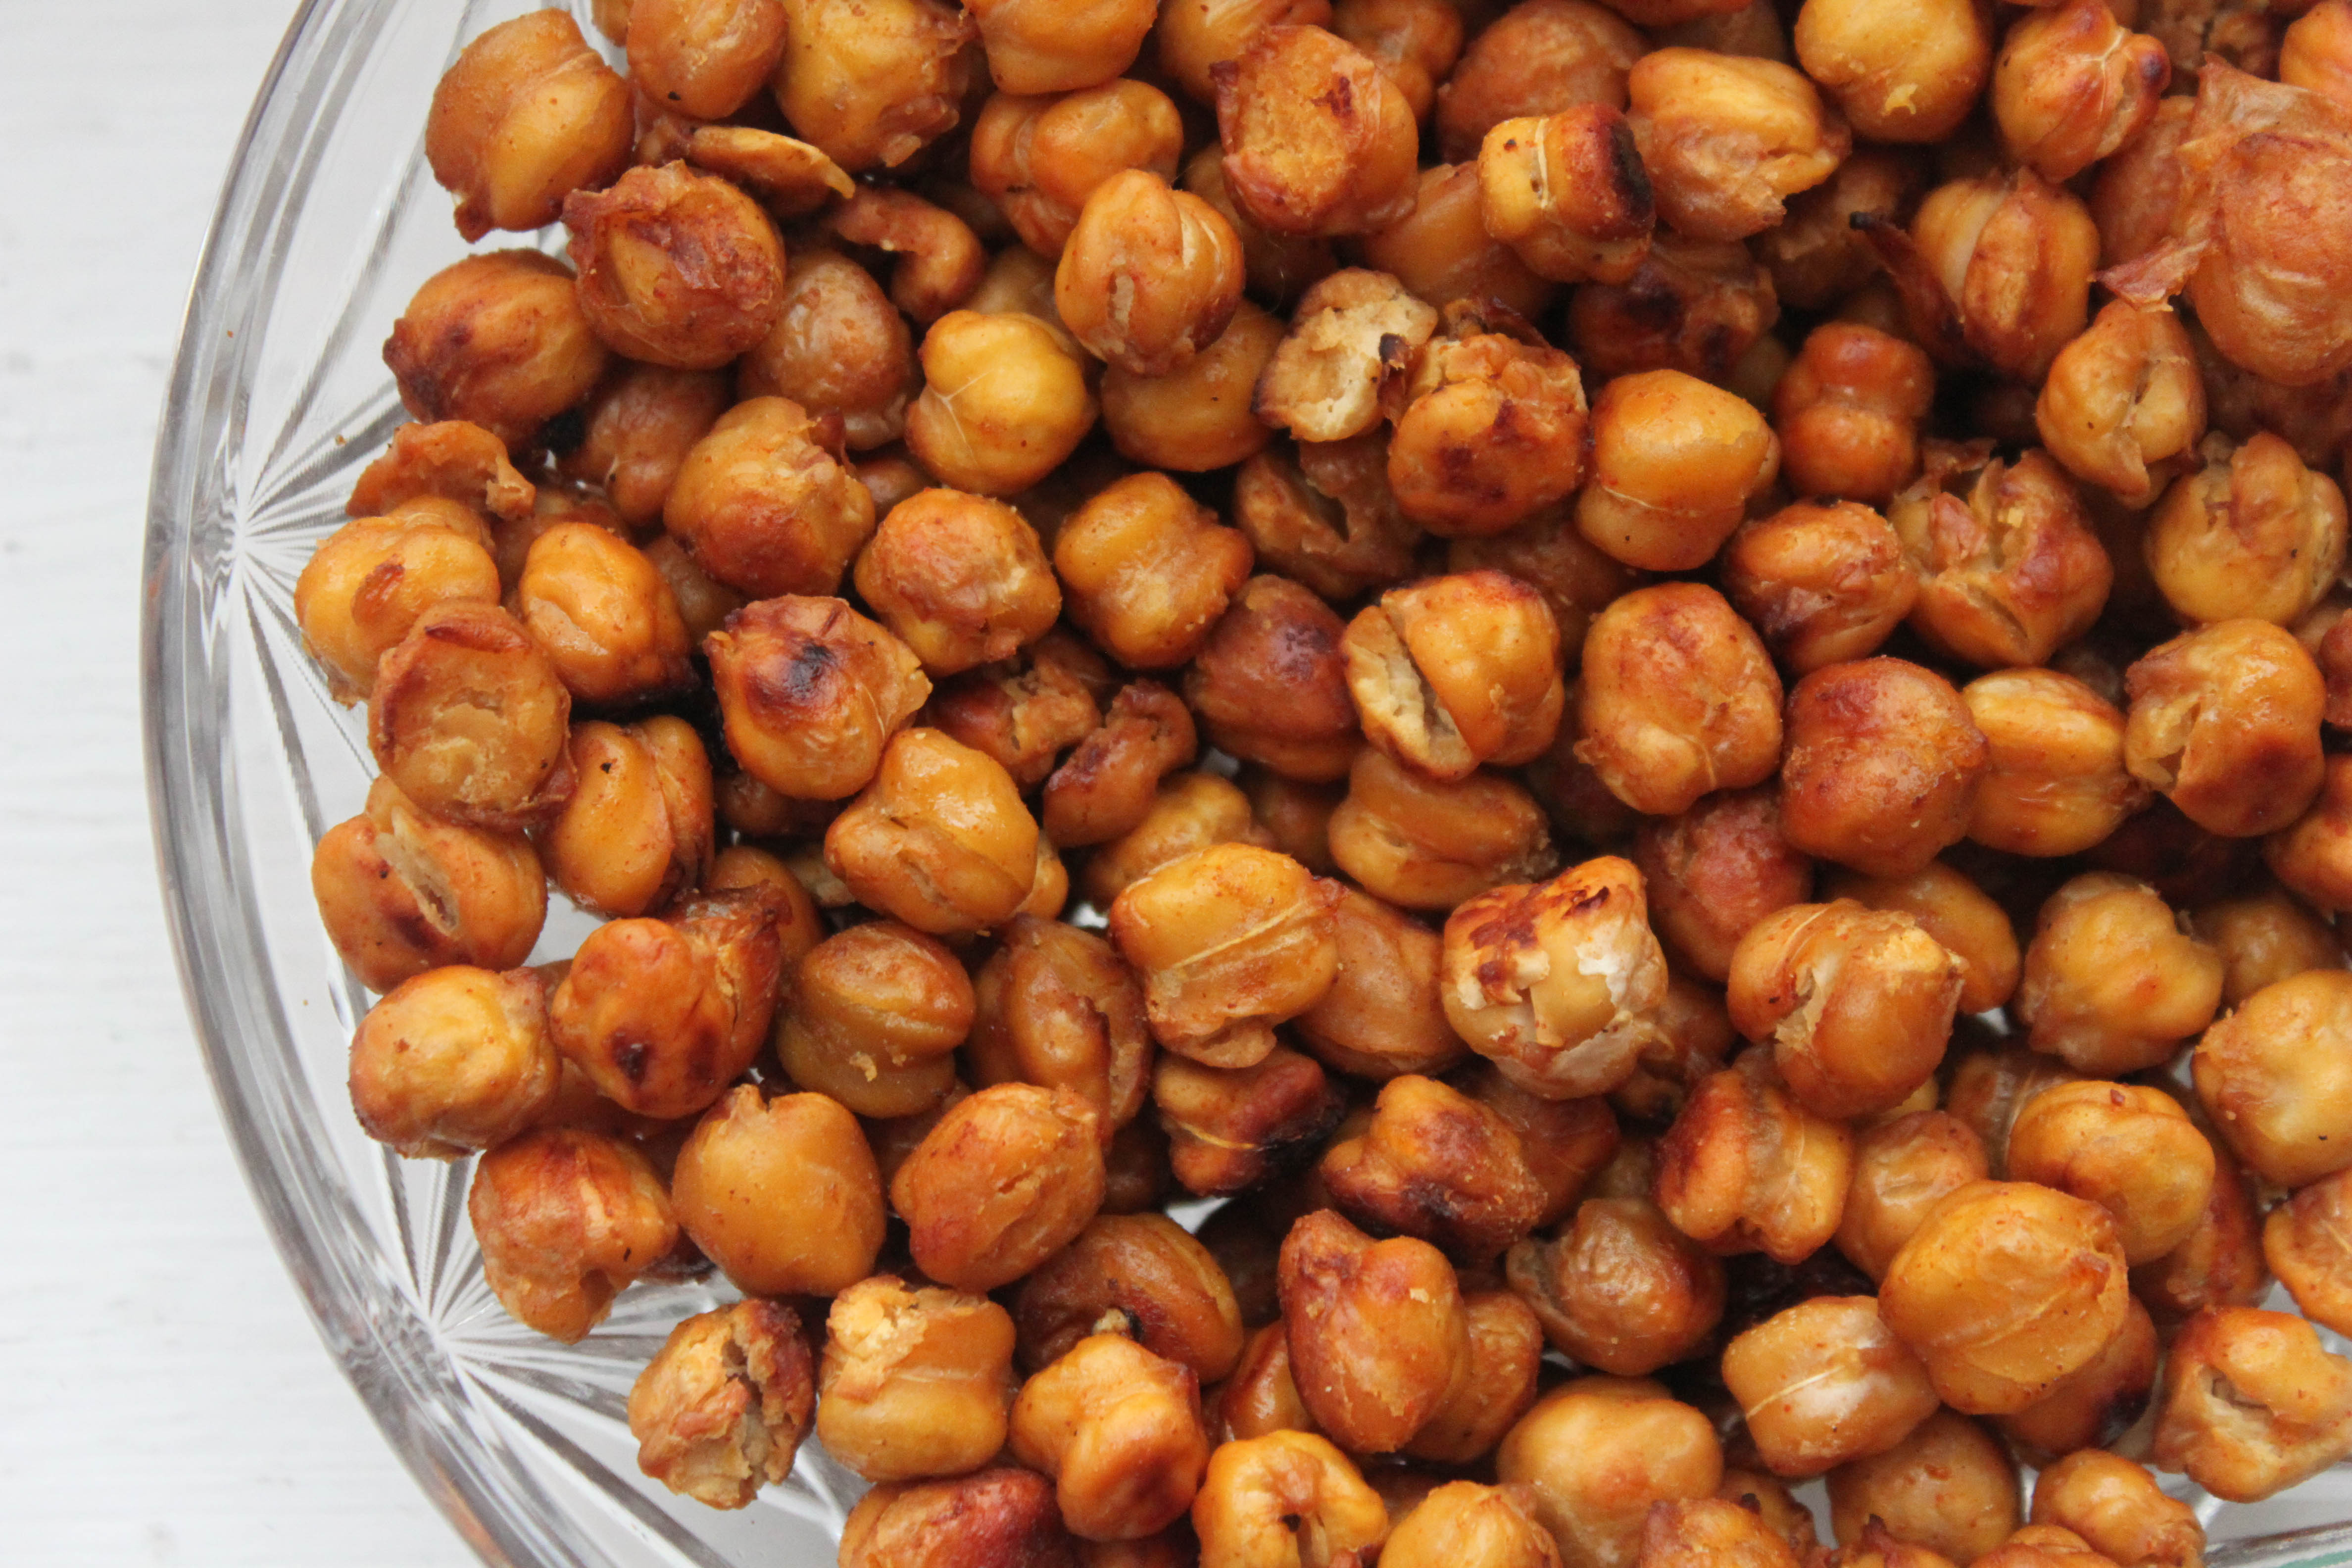 Roasted Chickpeas - Healthy Summer Snack Recipe